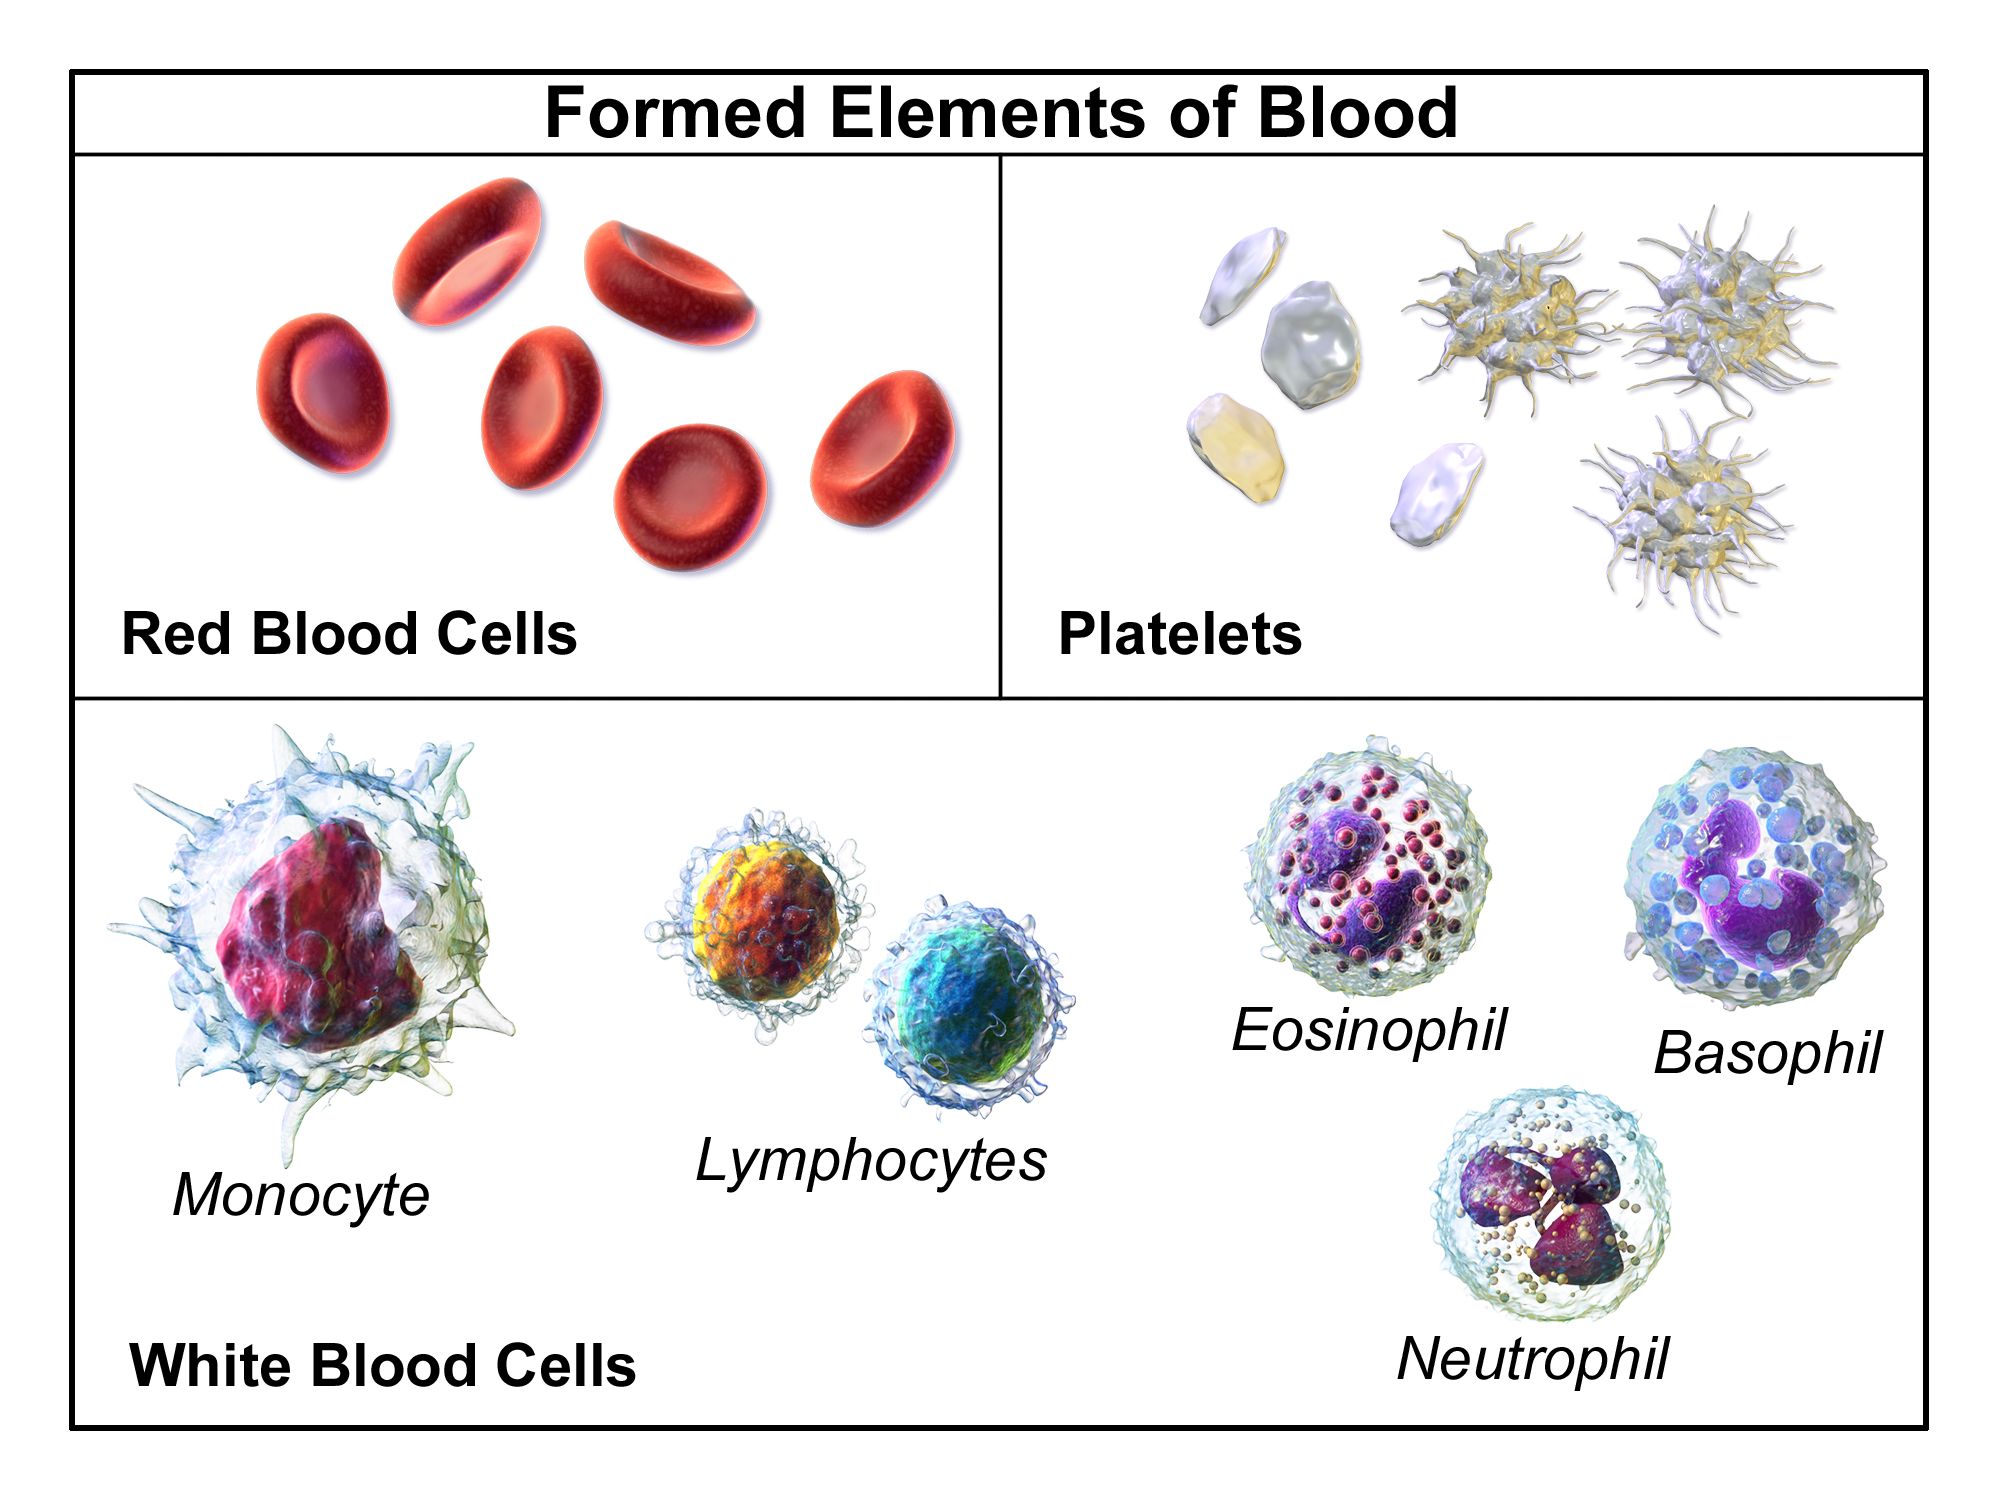 Components of Human Blood